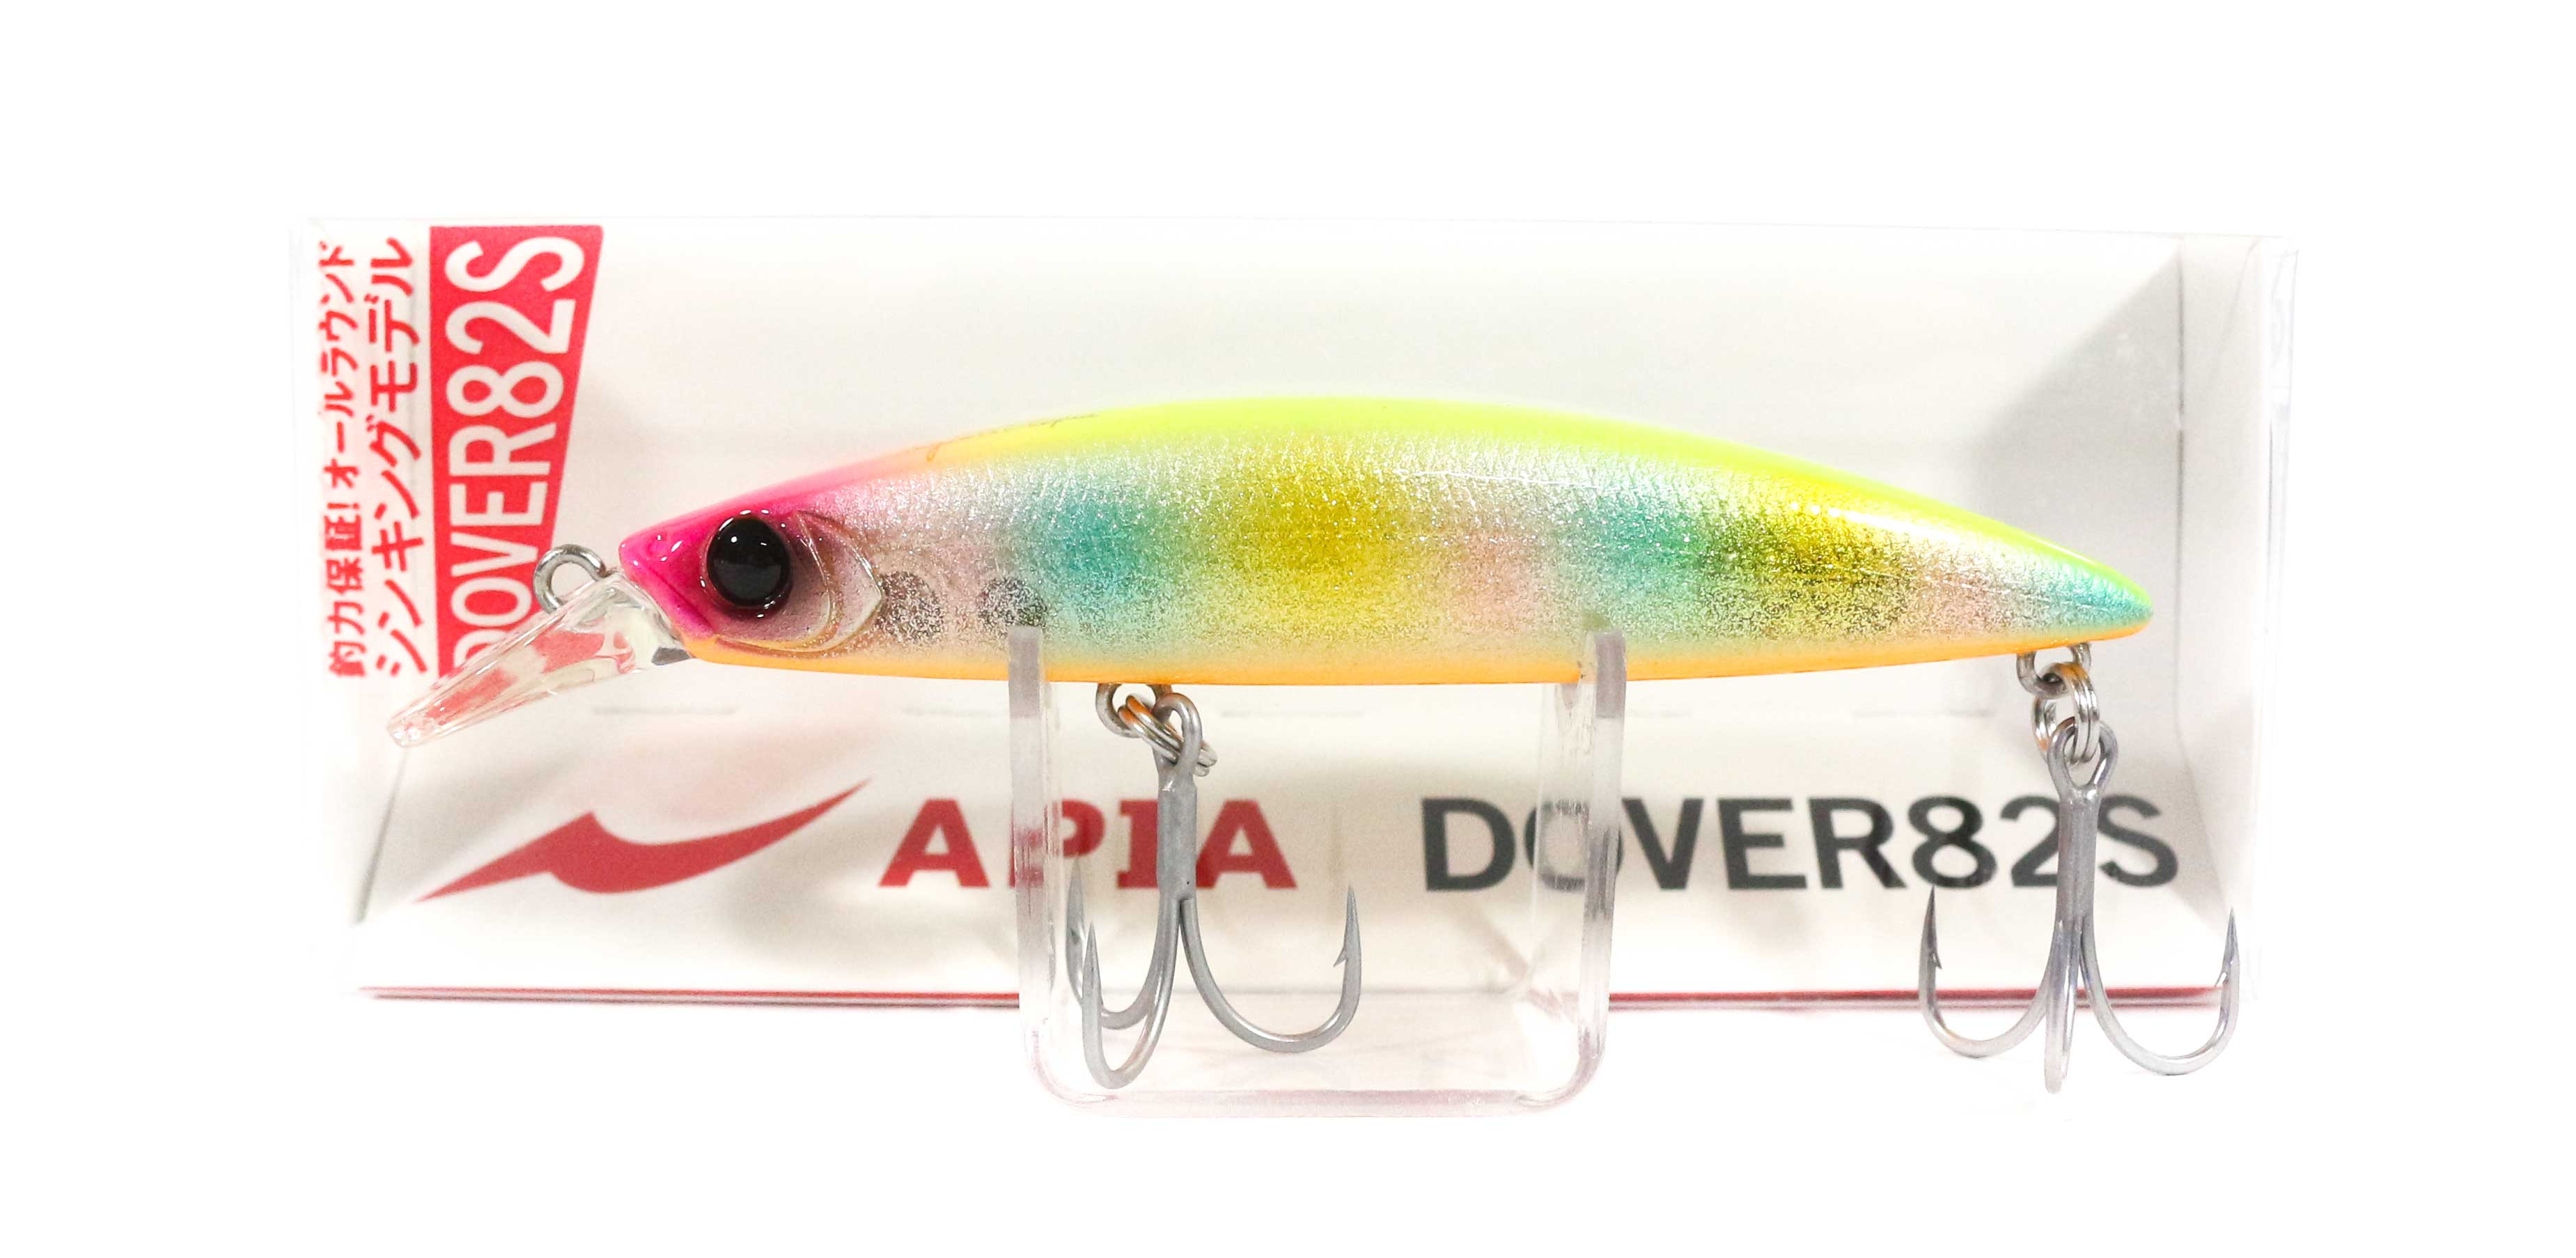 Apia Dover 82 S Sinking Lure 08 (3486)